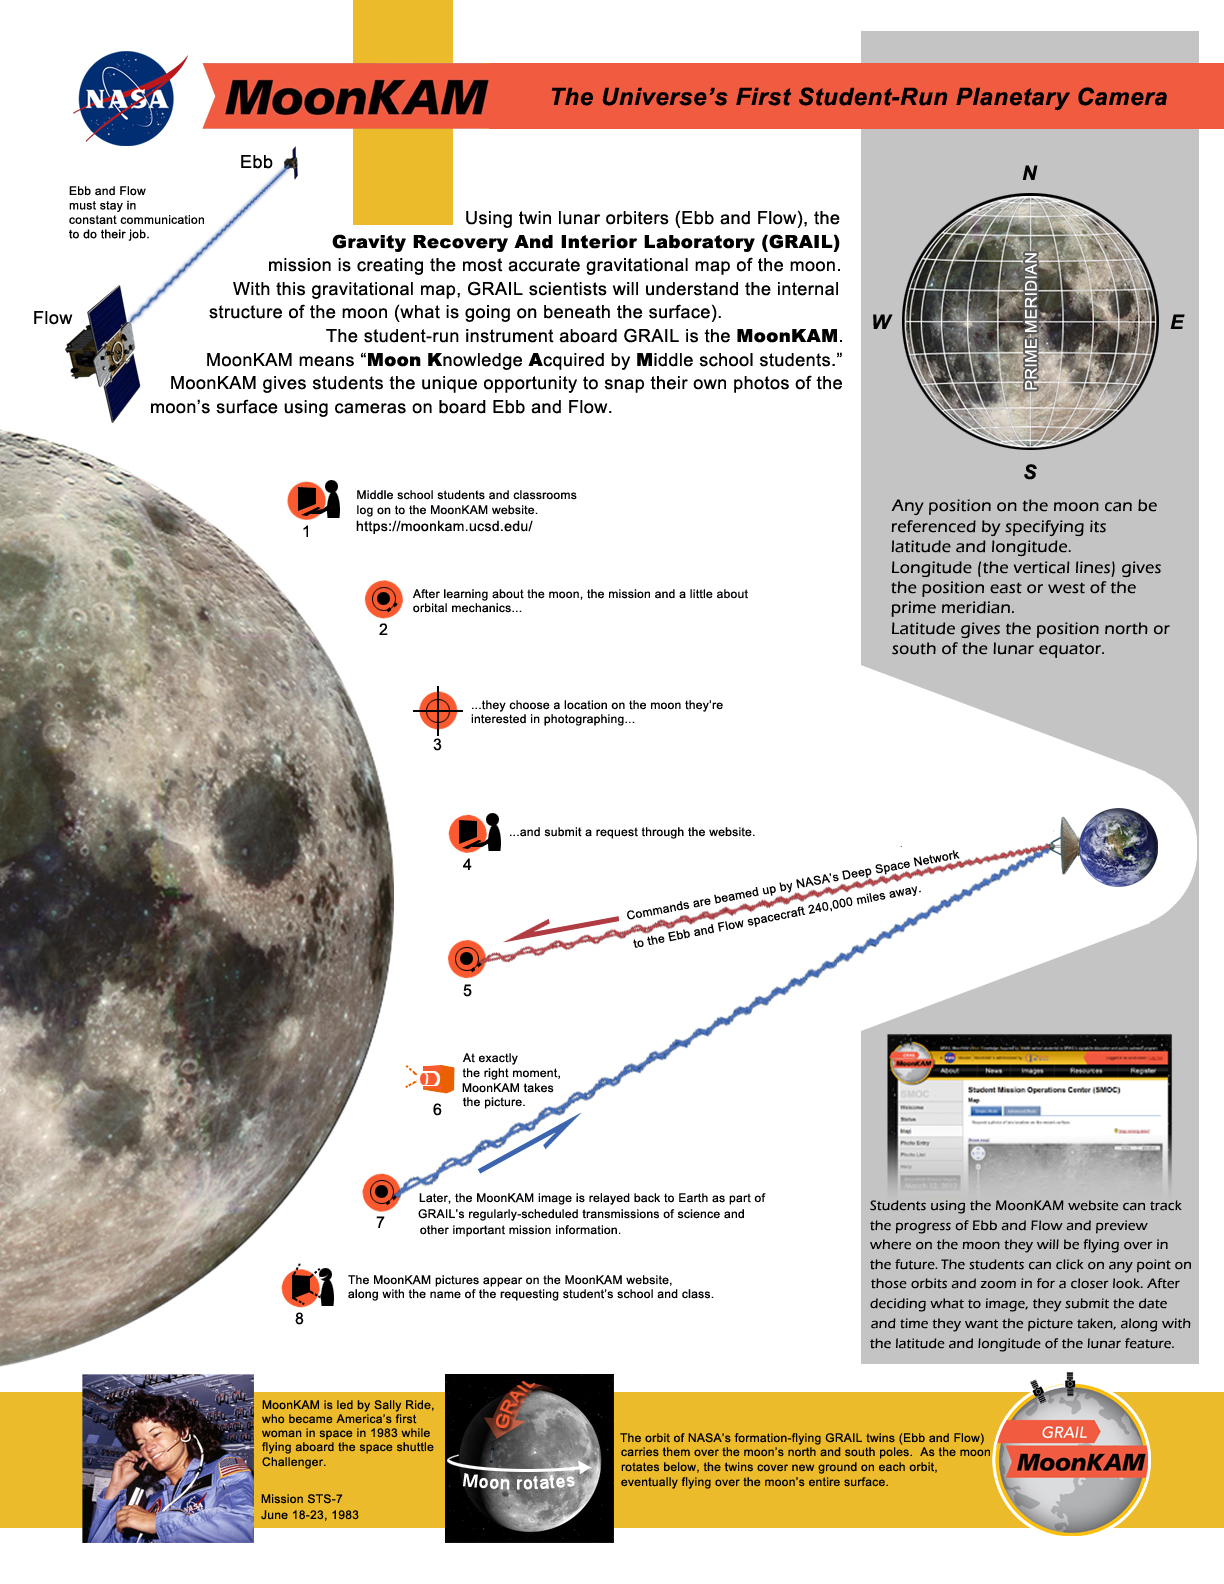 MoonKAM: The Universe's First Student-Run Planetary Camera